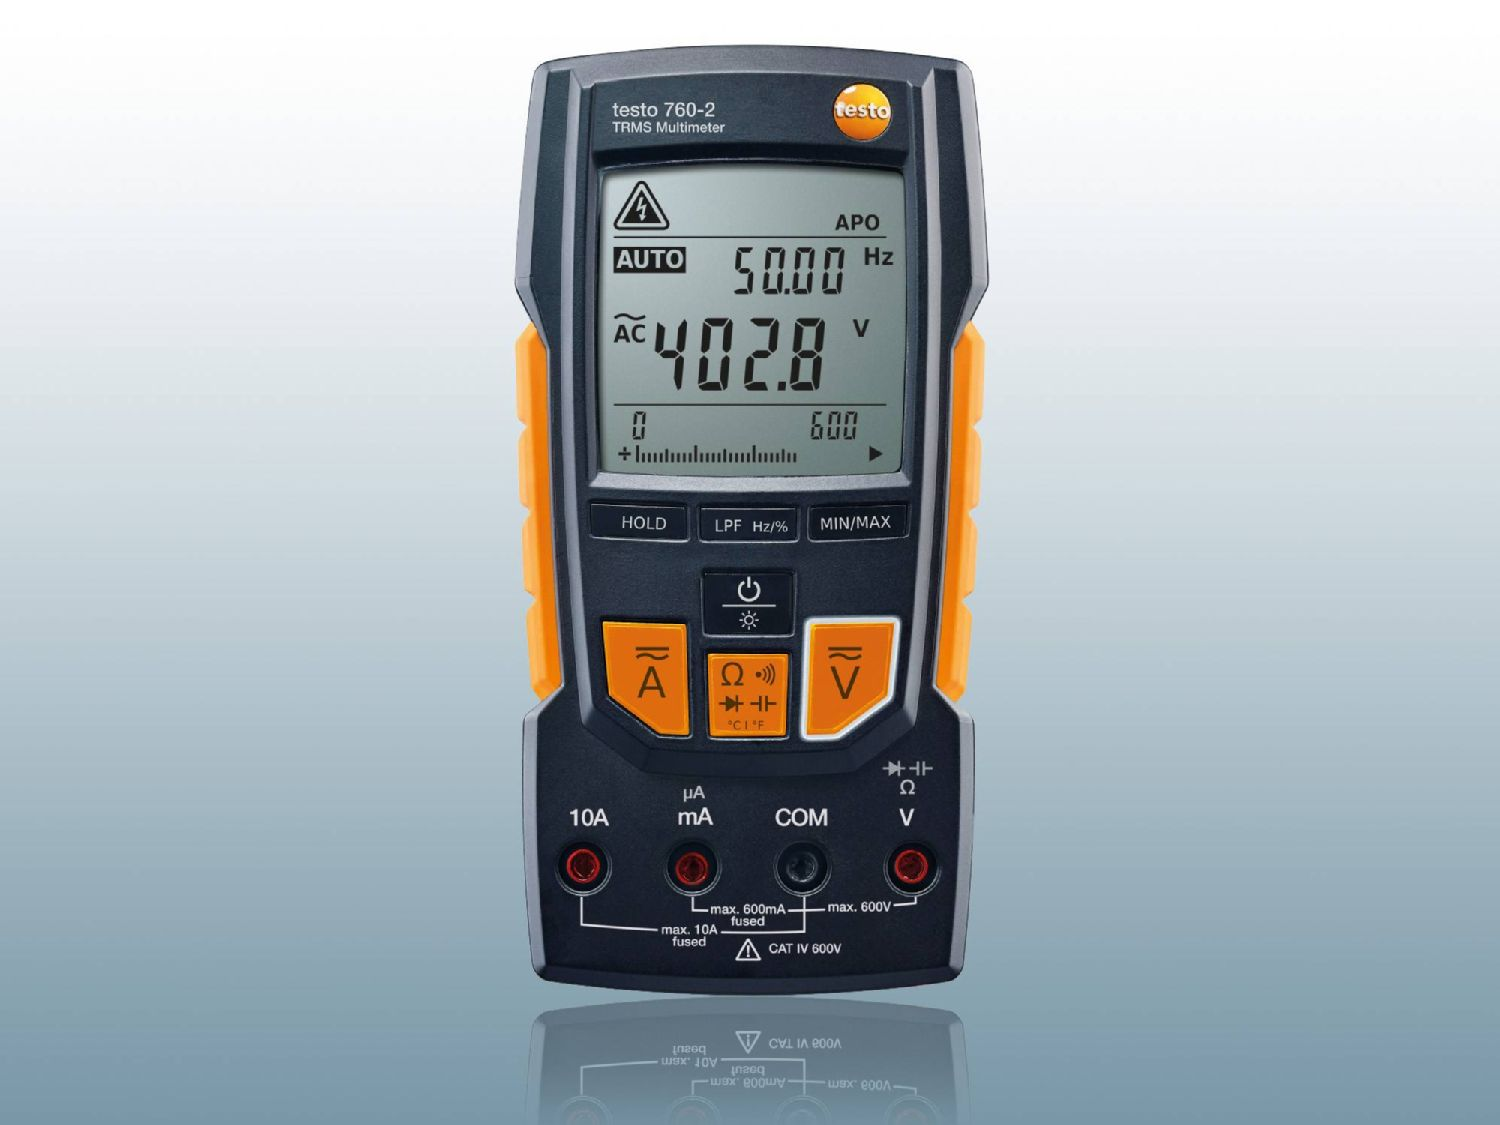 Digitale multimeter testo 760-2